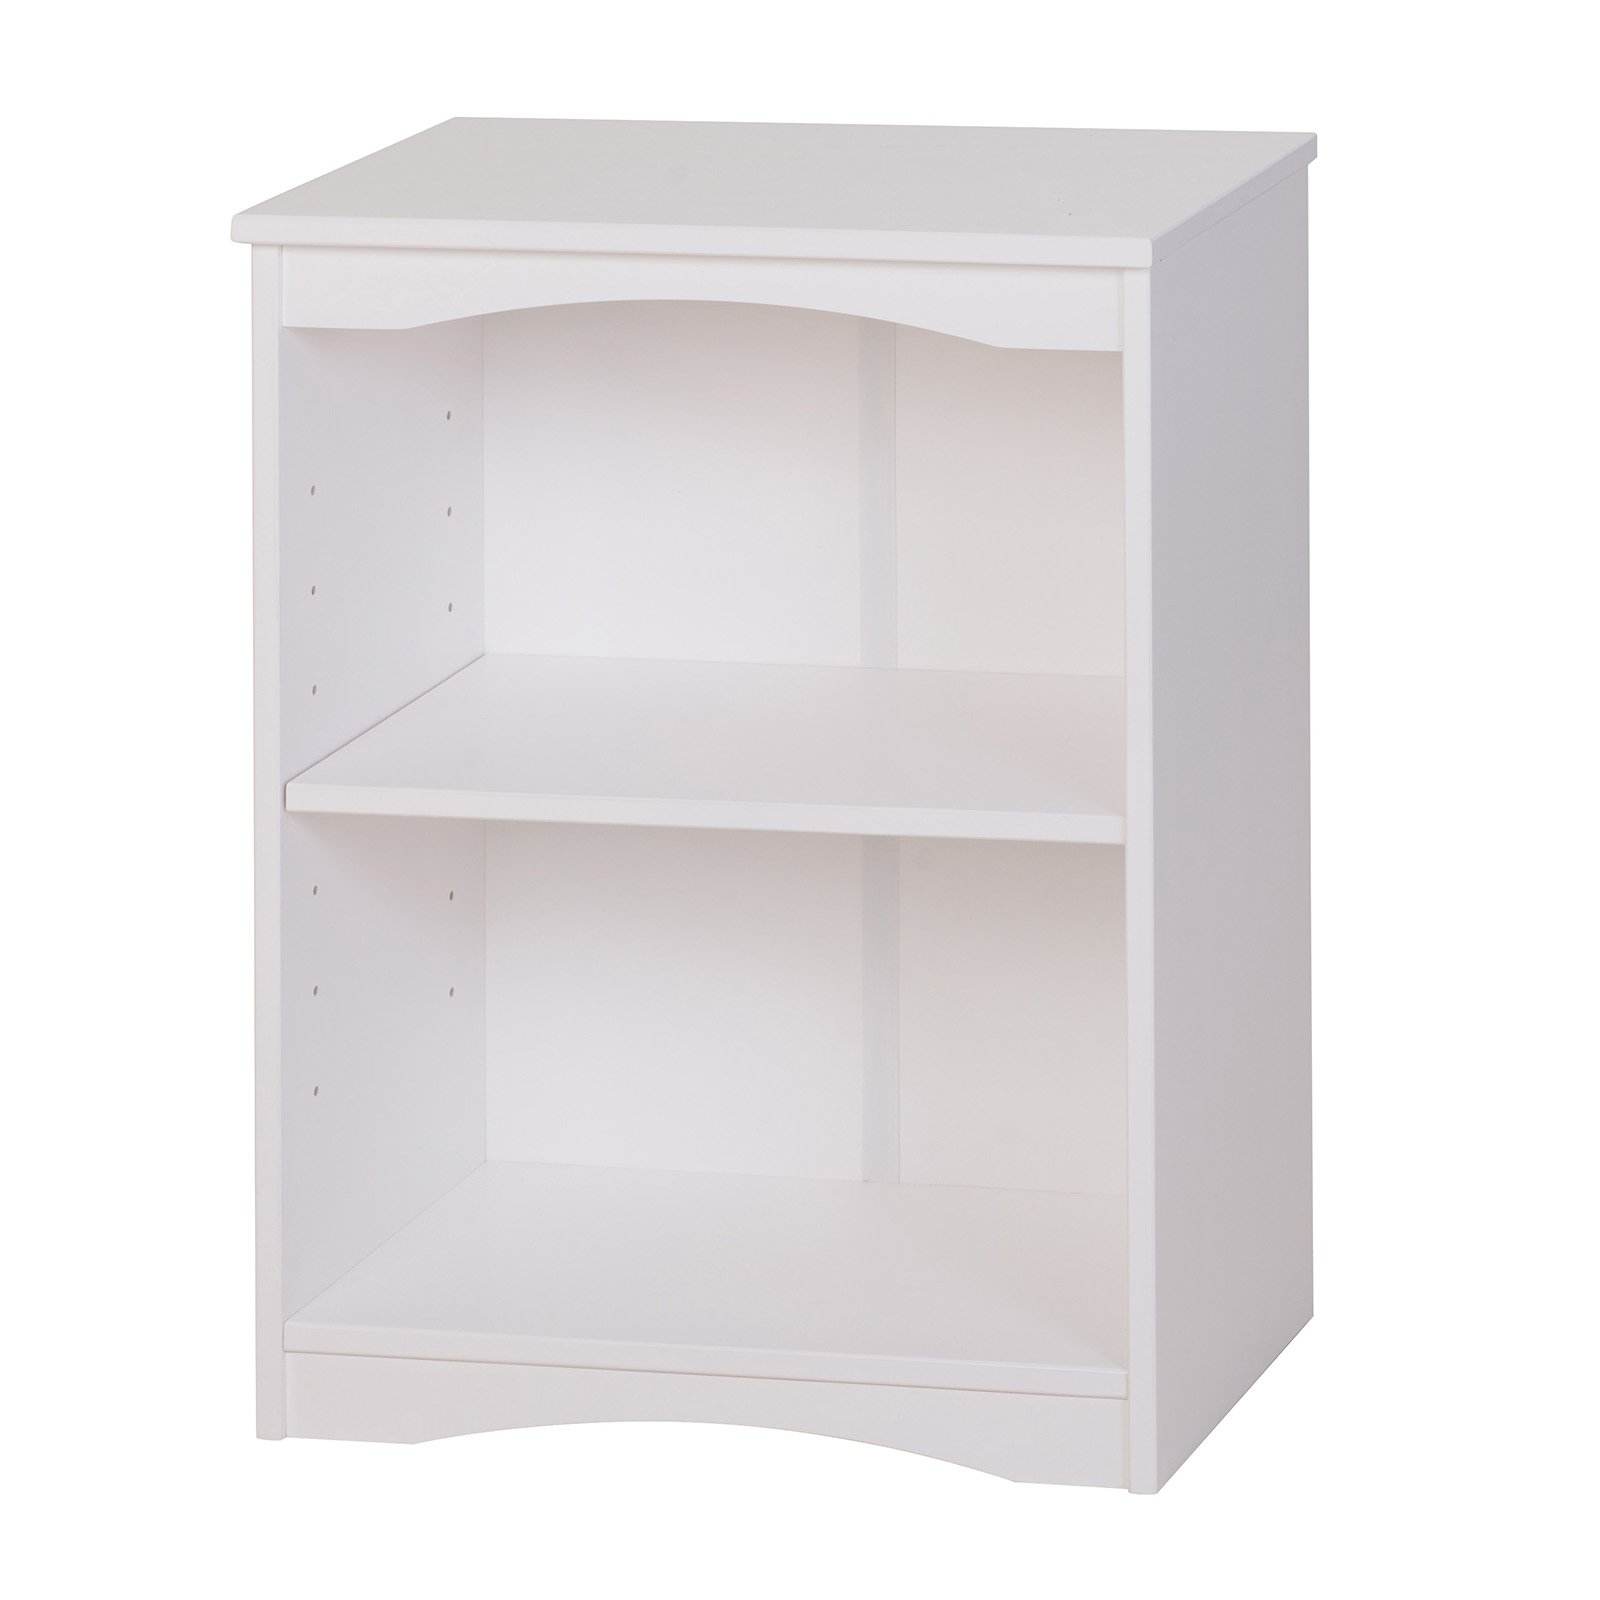 Camaflexi Essentials 23 in. Wide Wooden Bookcase by Camaflexi